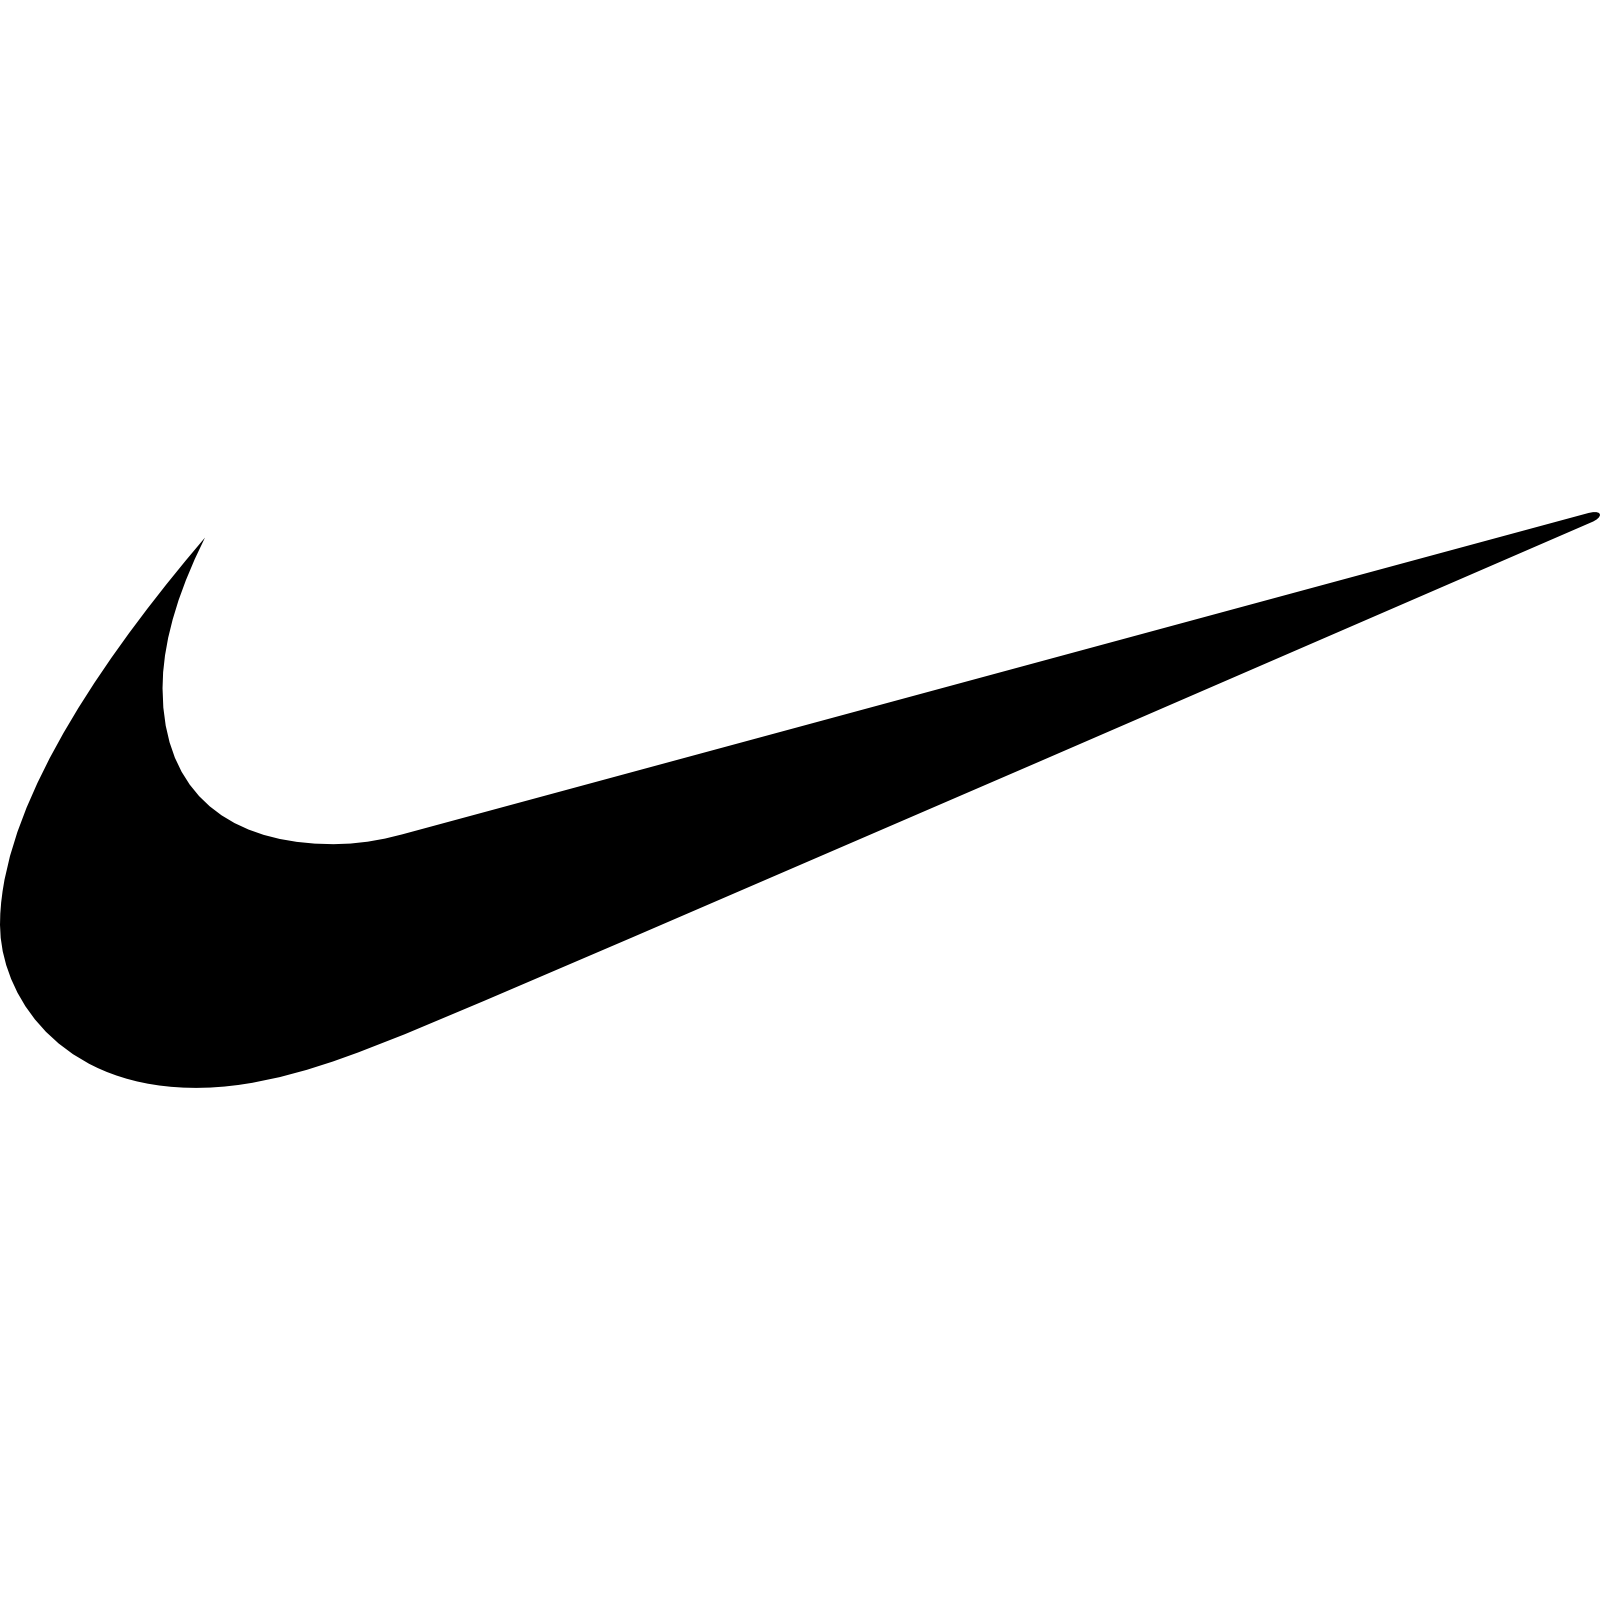 Nike Filled Icon - Free Download at Icons8 - Nike Logo Outline